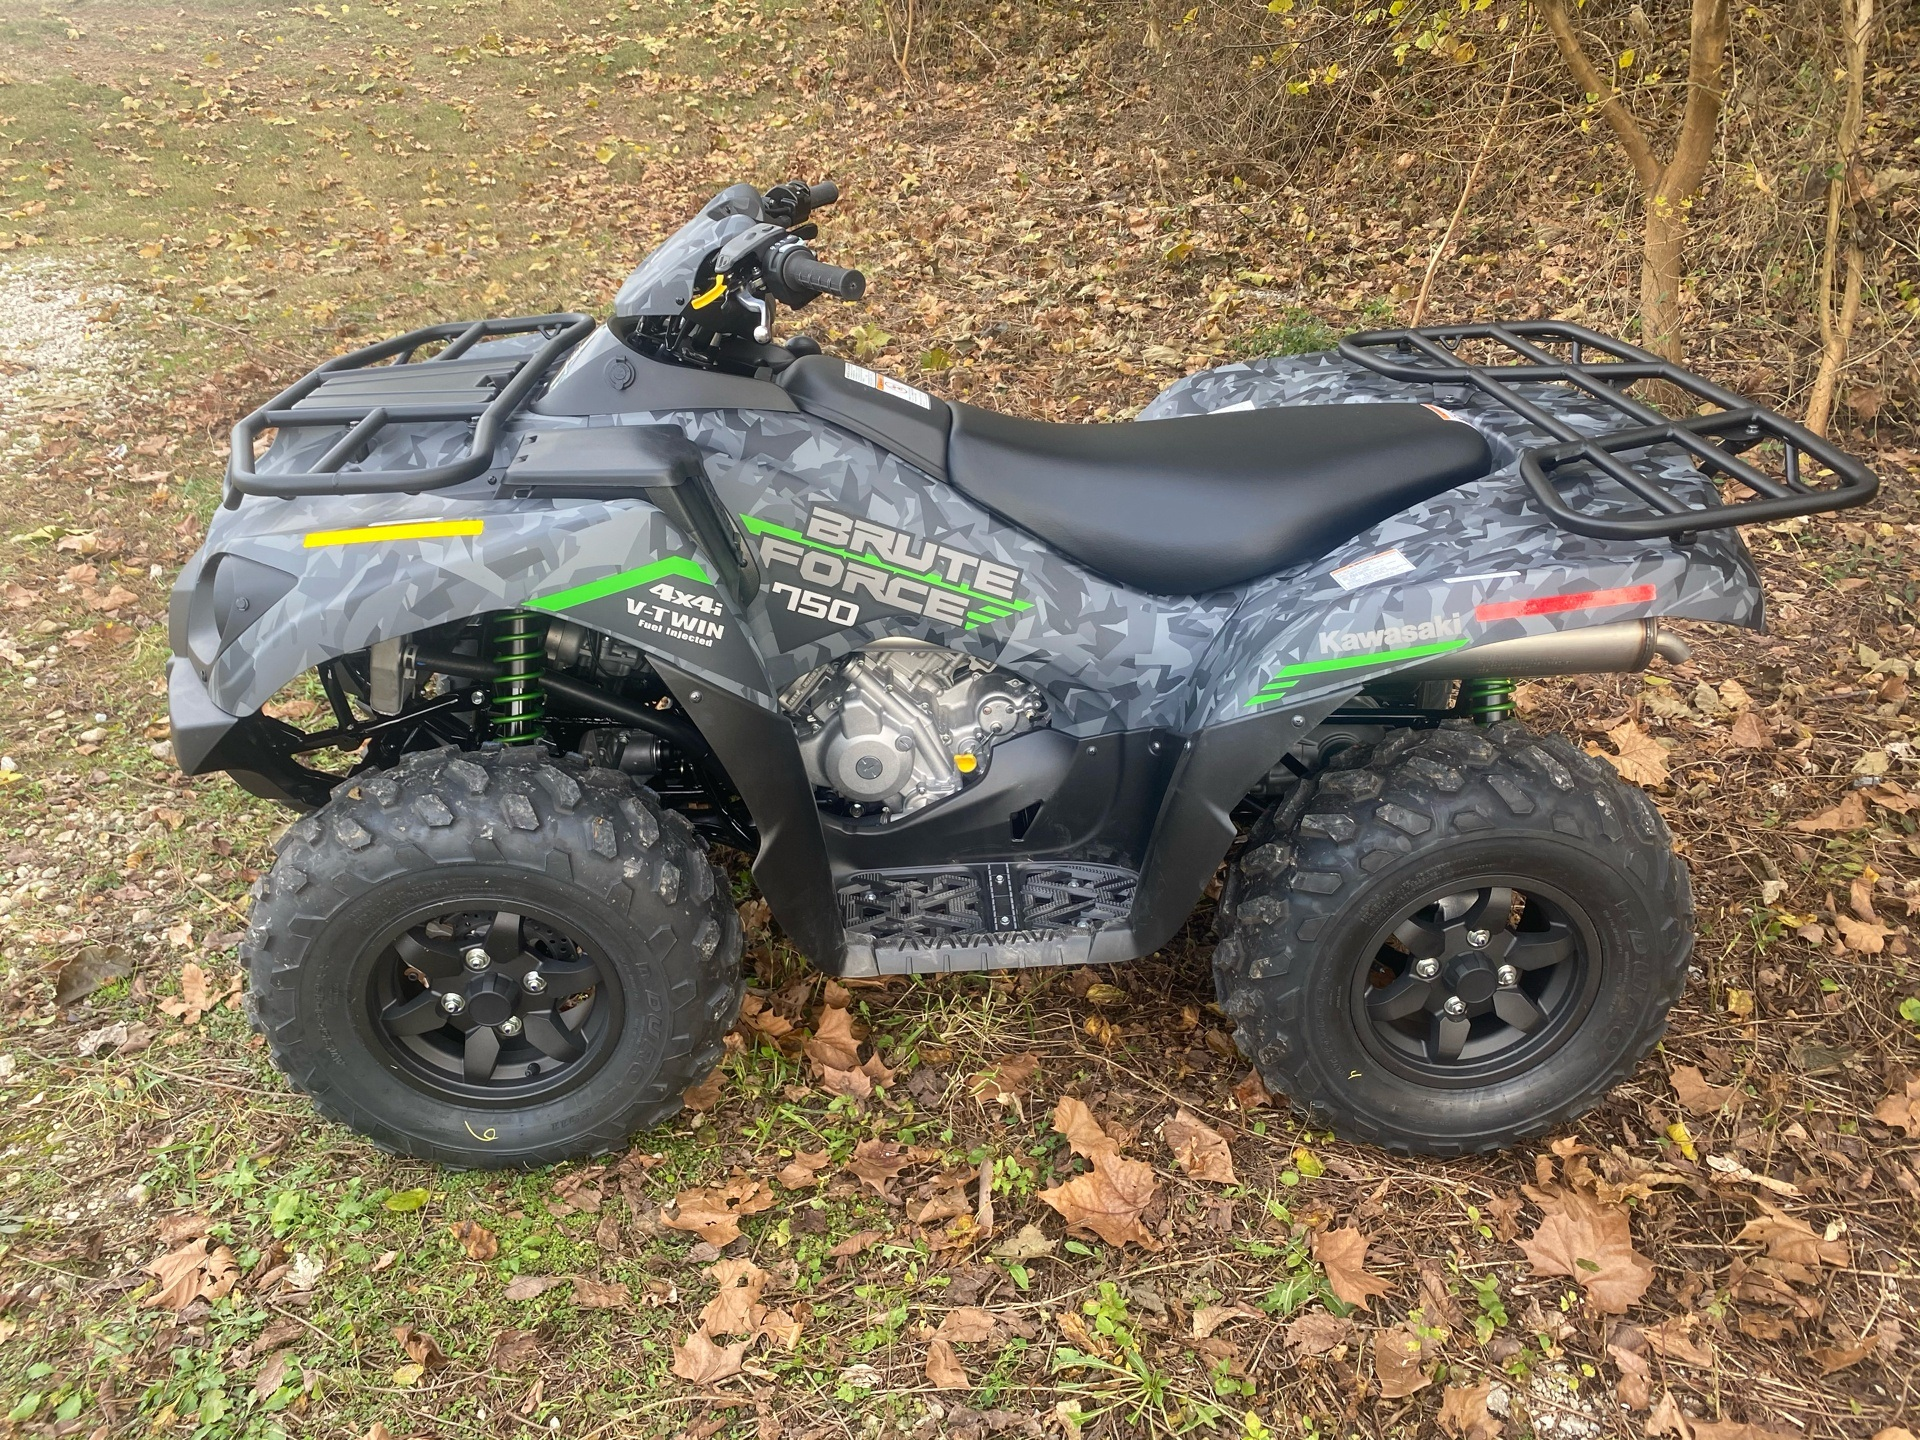 2021 Kawasaki Brute Force 750 4x4i EPS in Harrison, Arkansas - Photo 4